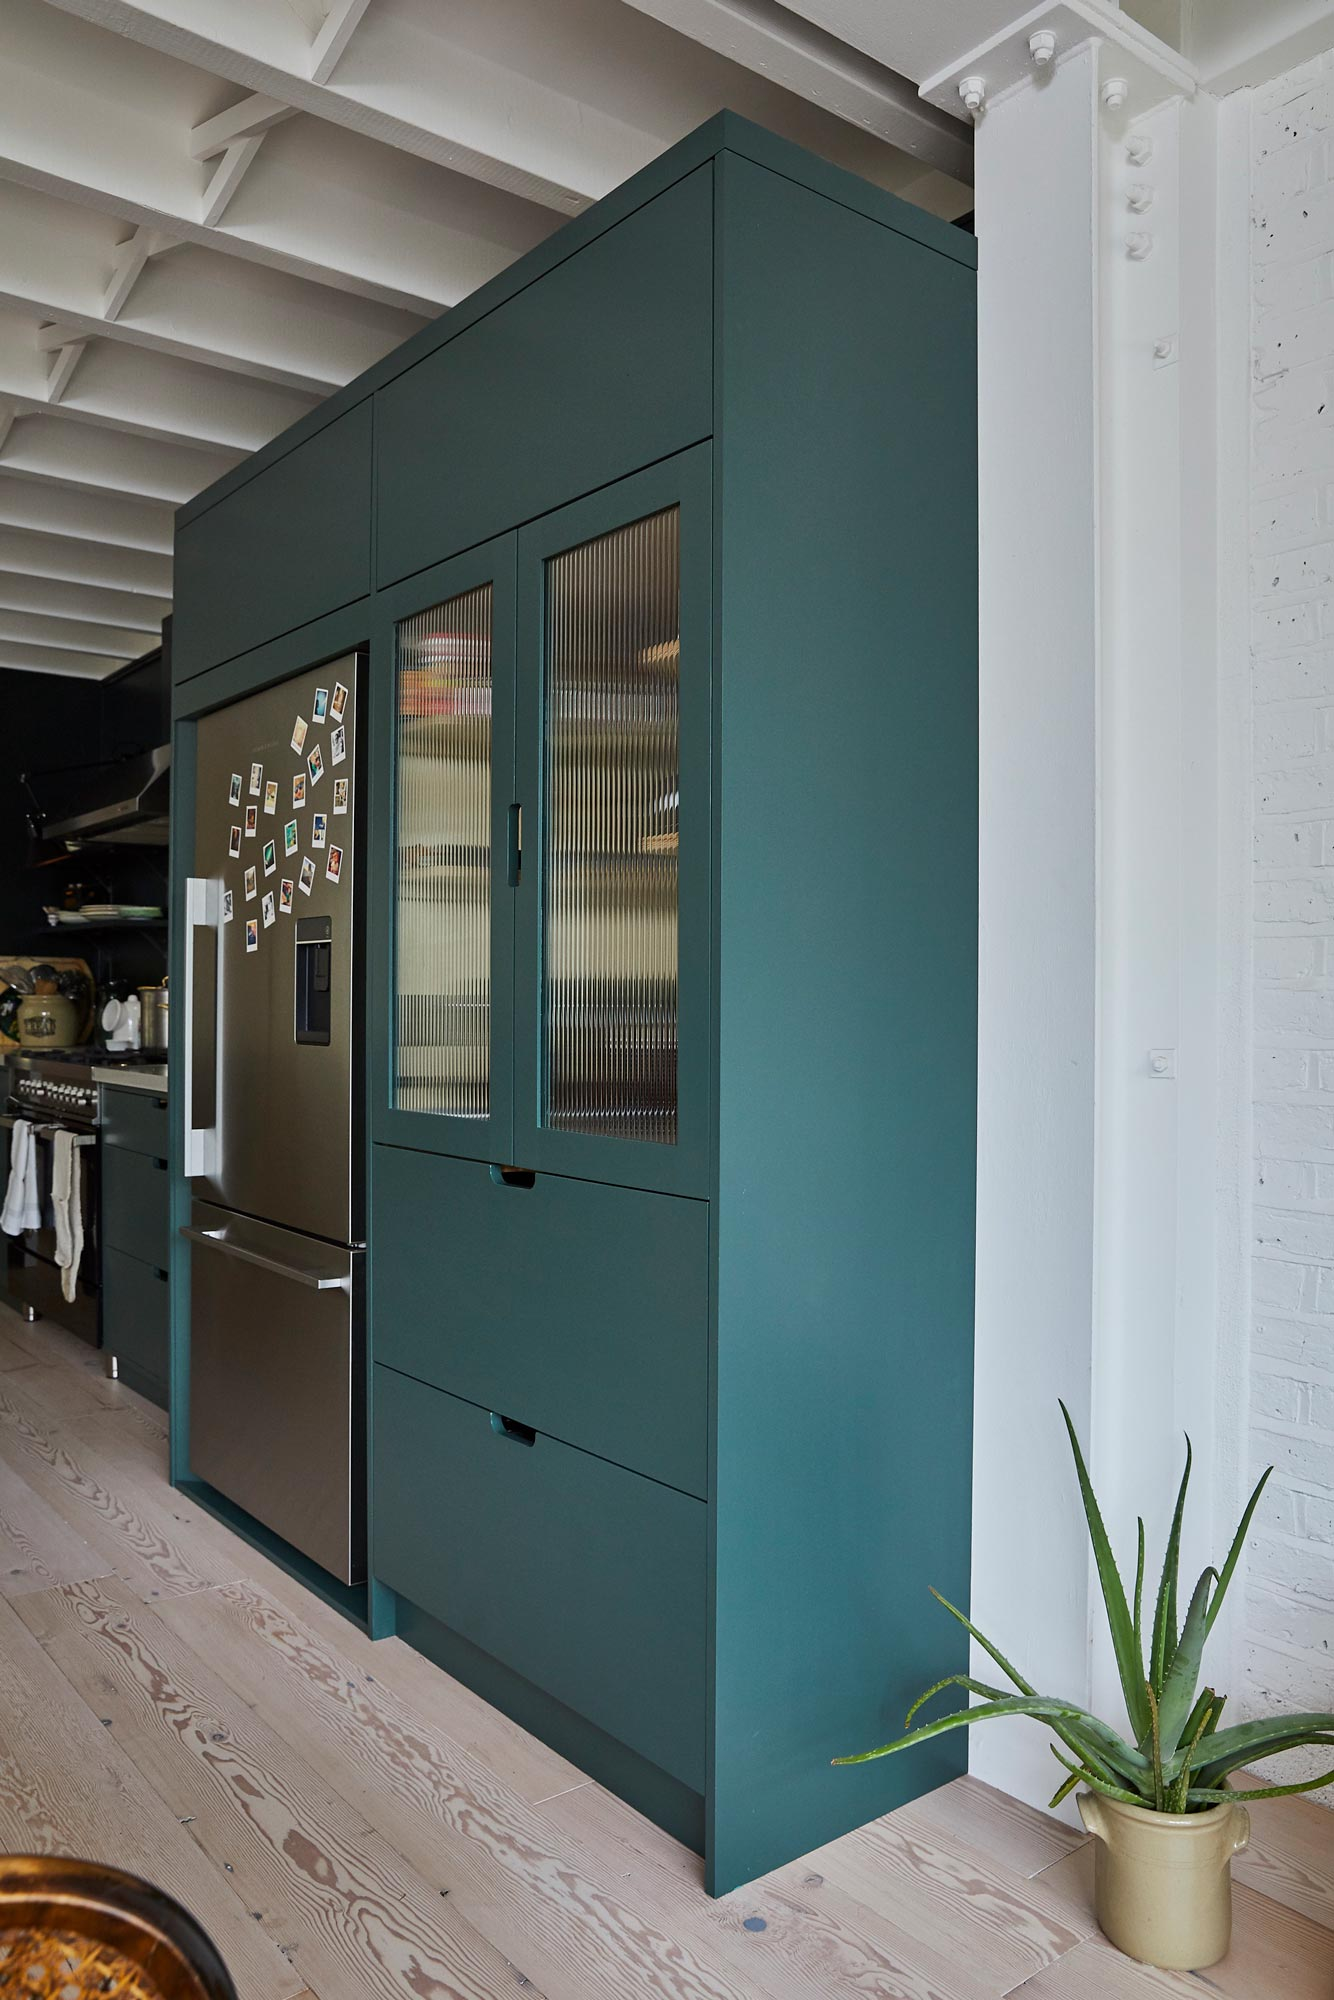 Green painted pantry unit next to stainless steel fridge freezer